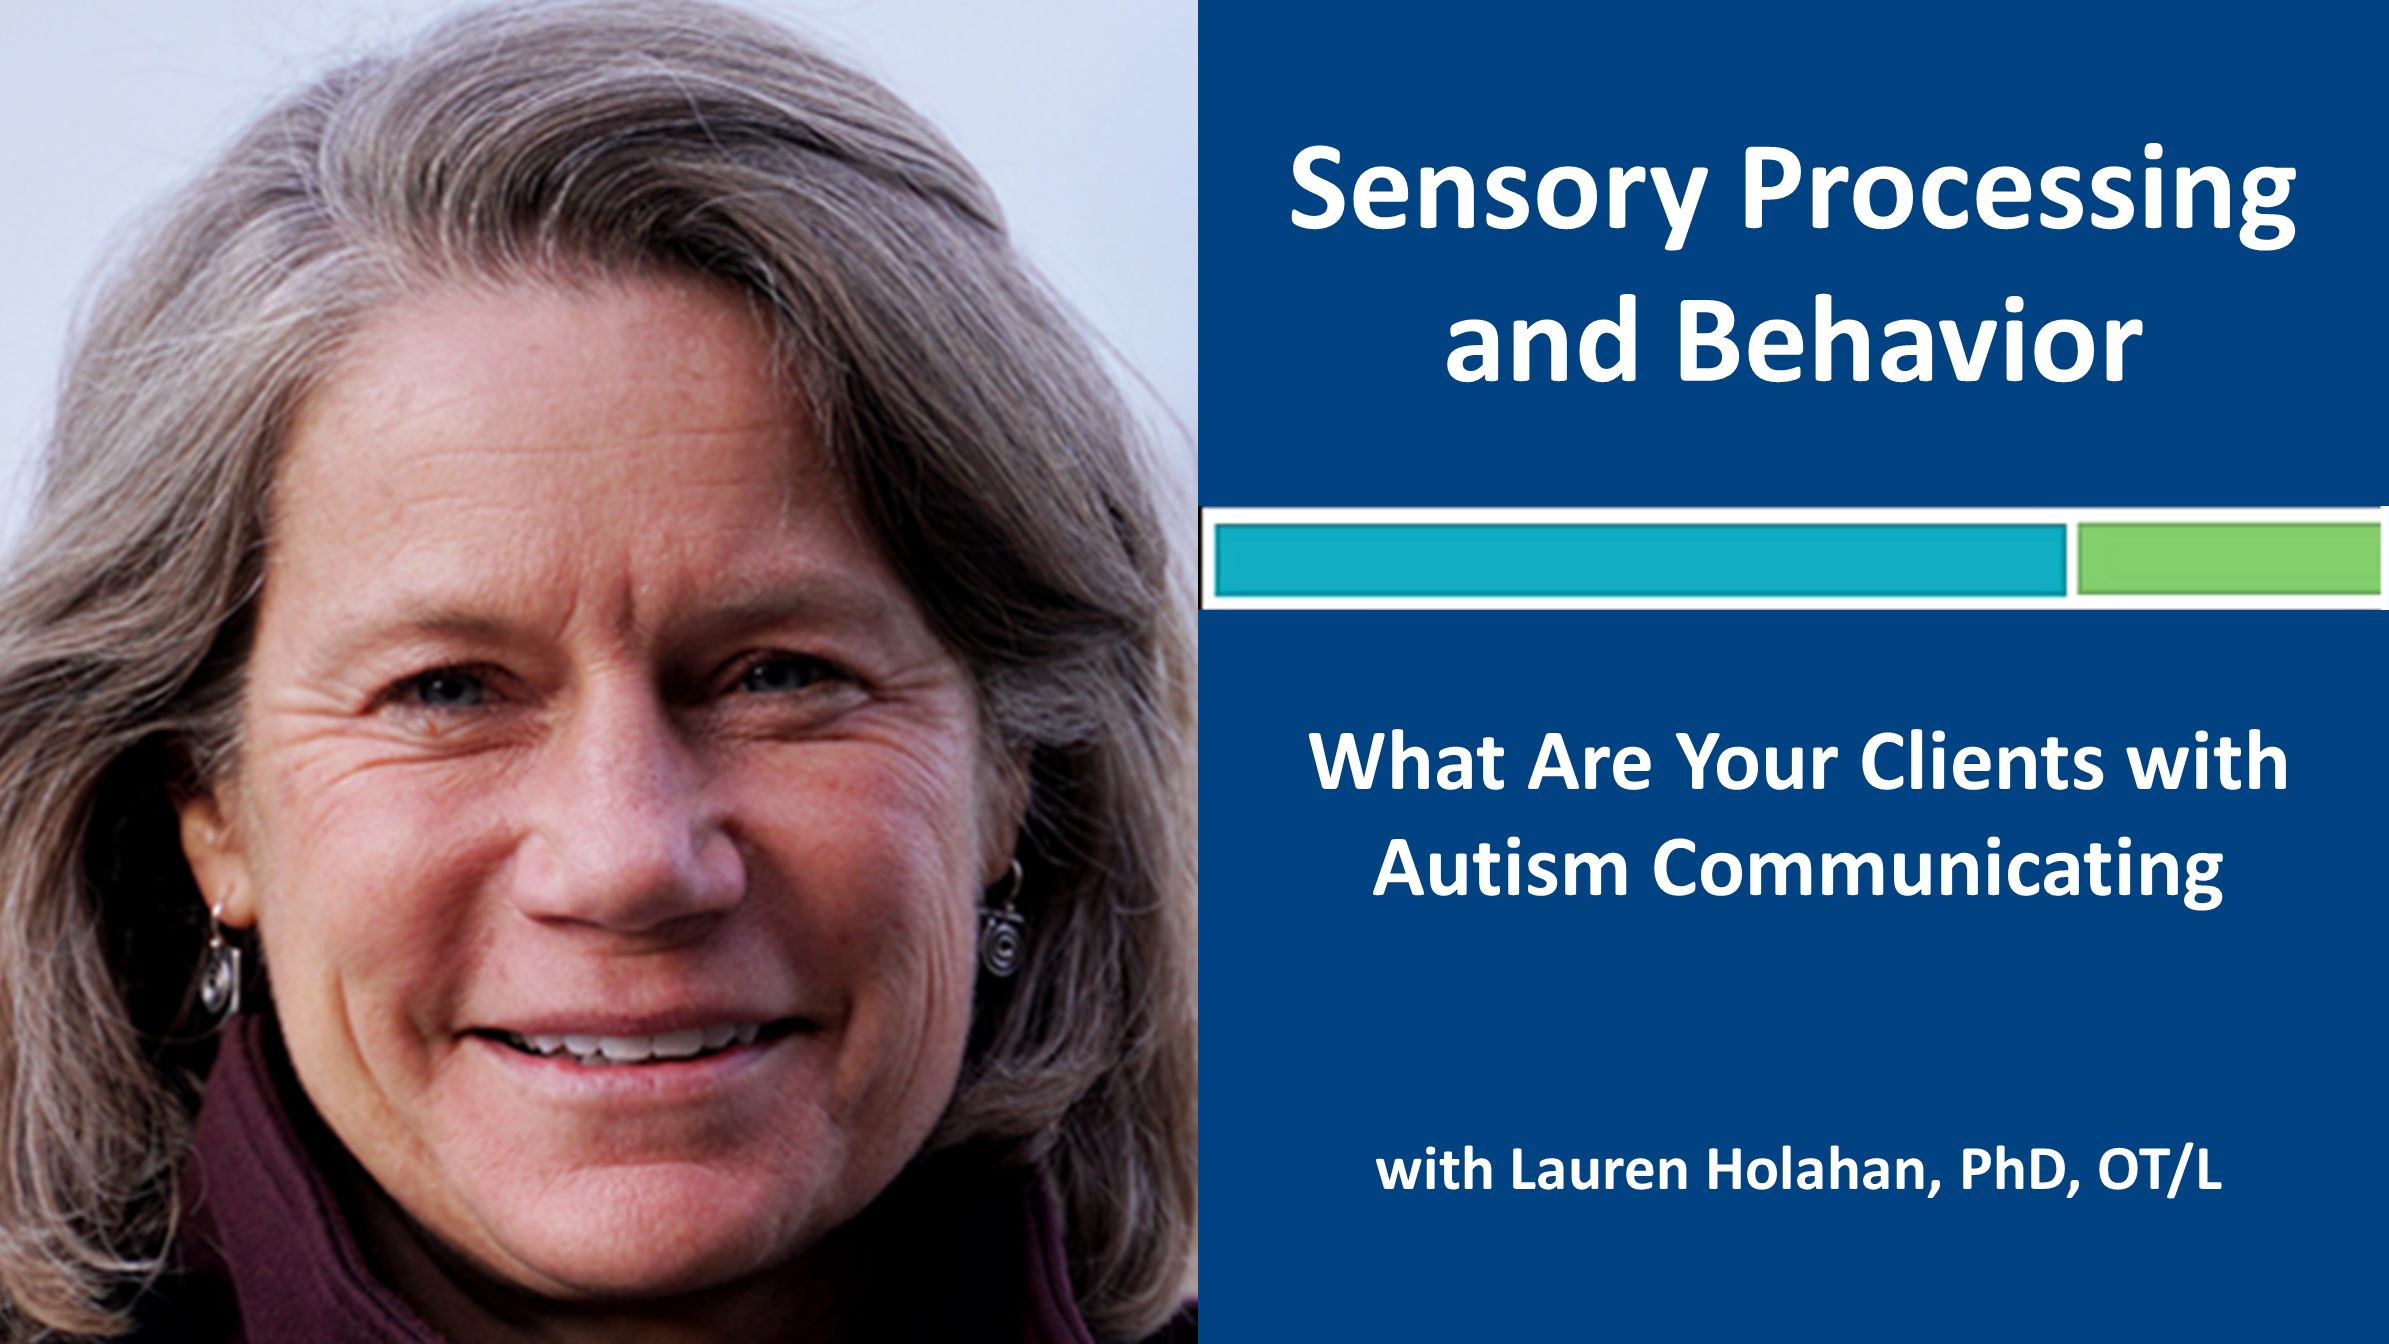 Webinar 1: Sensory Processing and Behavior: What Are Your Clients with Autism Communicating with Lauren Holahan, PhD, OT/L